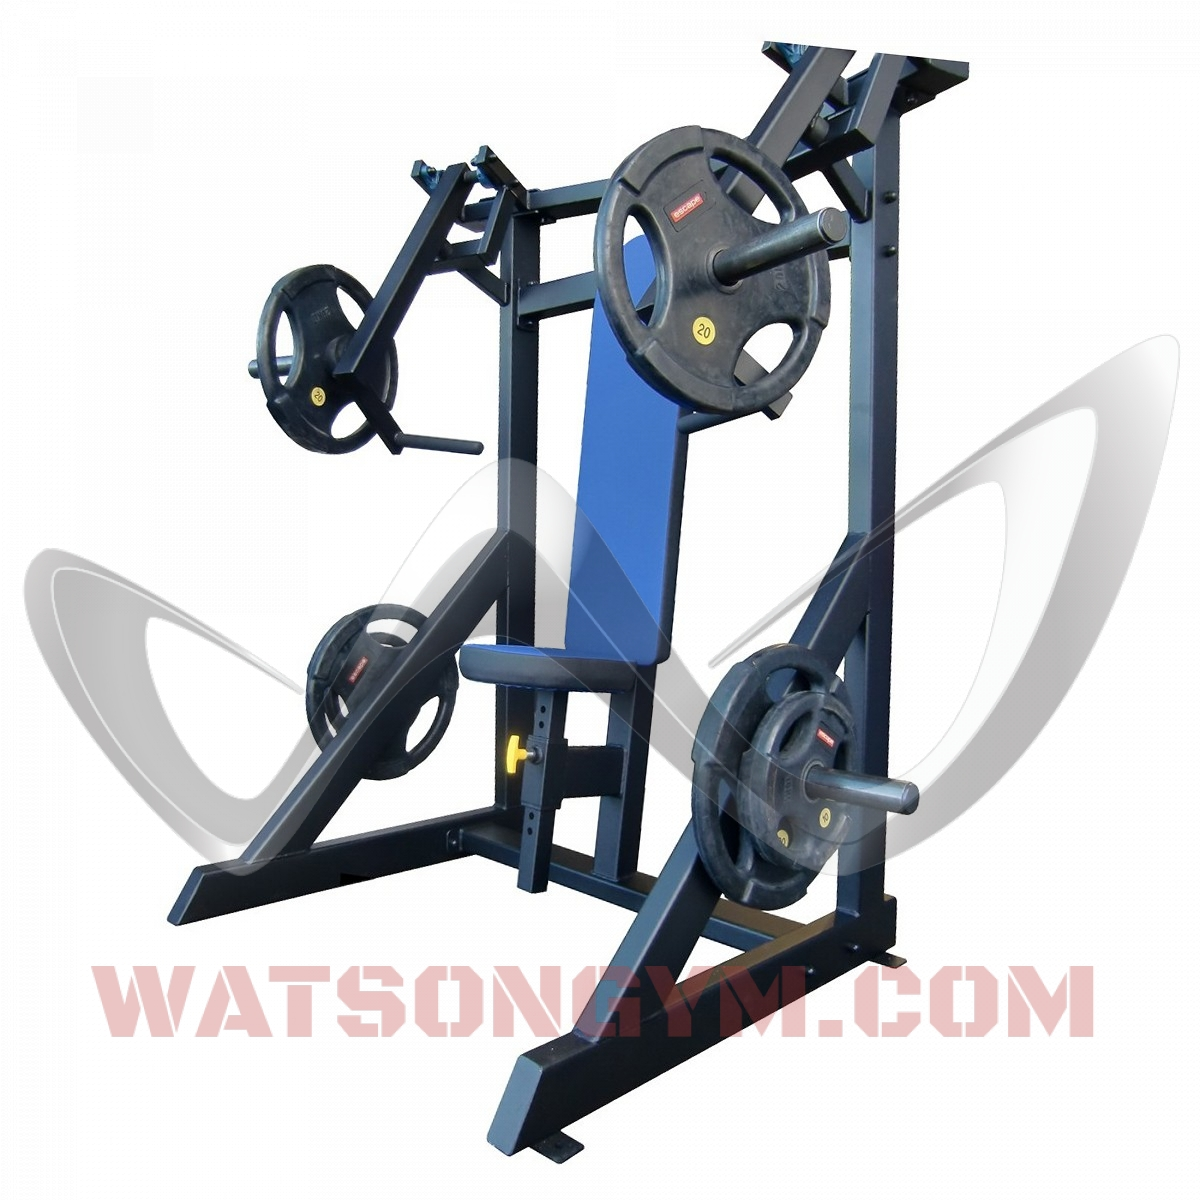 Plate loaded chest press watson gym equipment